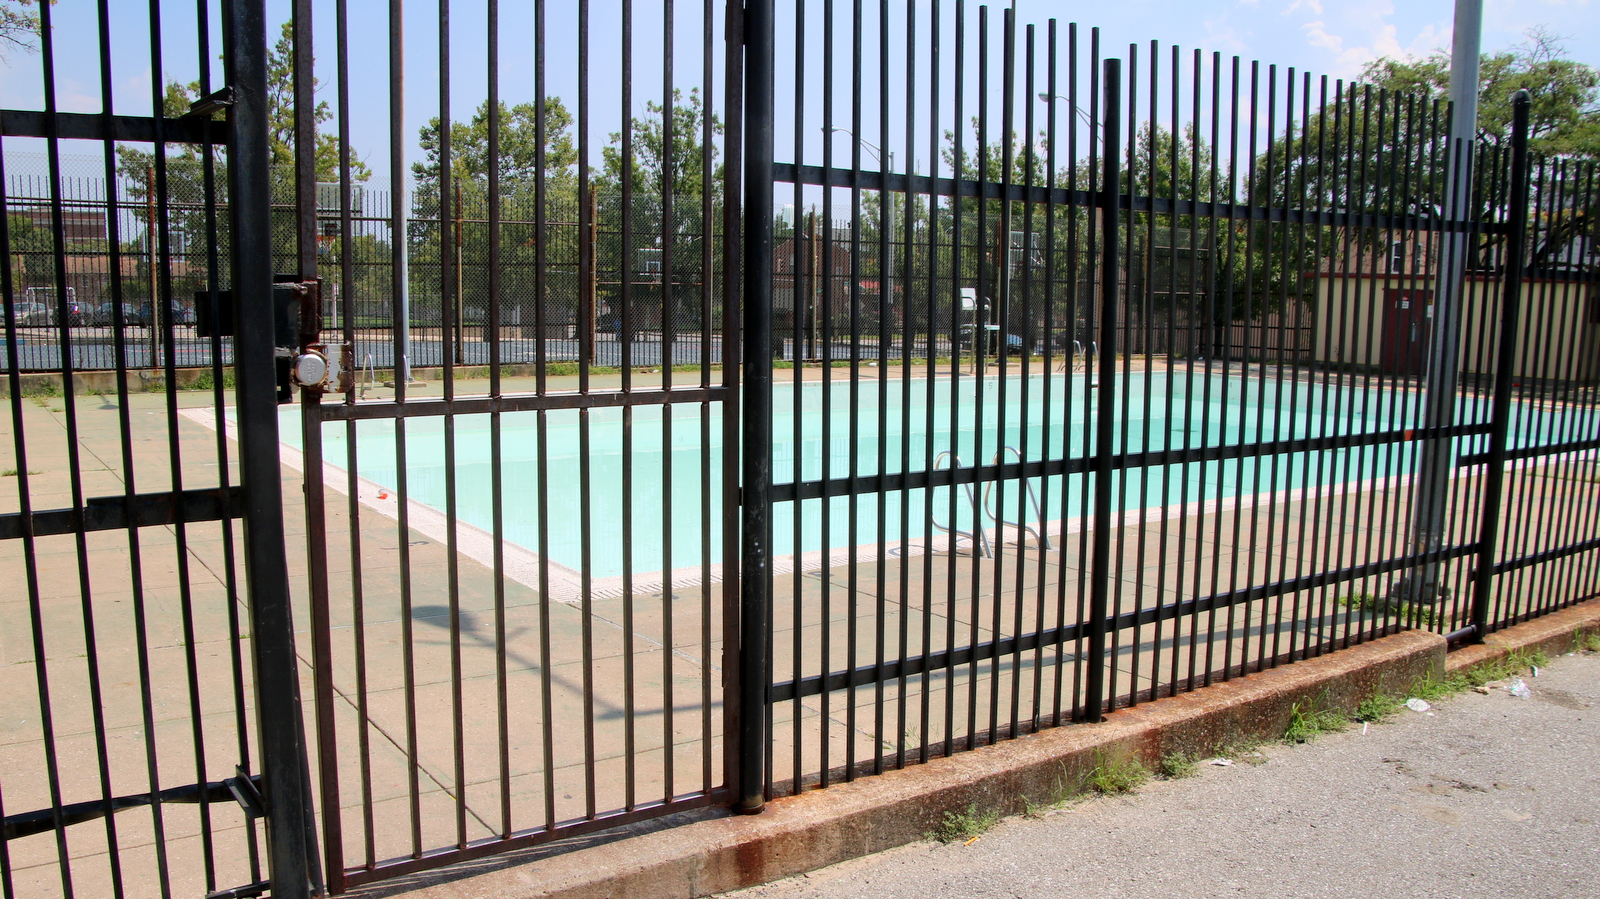 The William McAbee pool in West Baltimore is closed for the summer, with a week of summer vacation still to go for city school students. (Fern Shen)